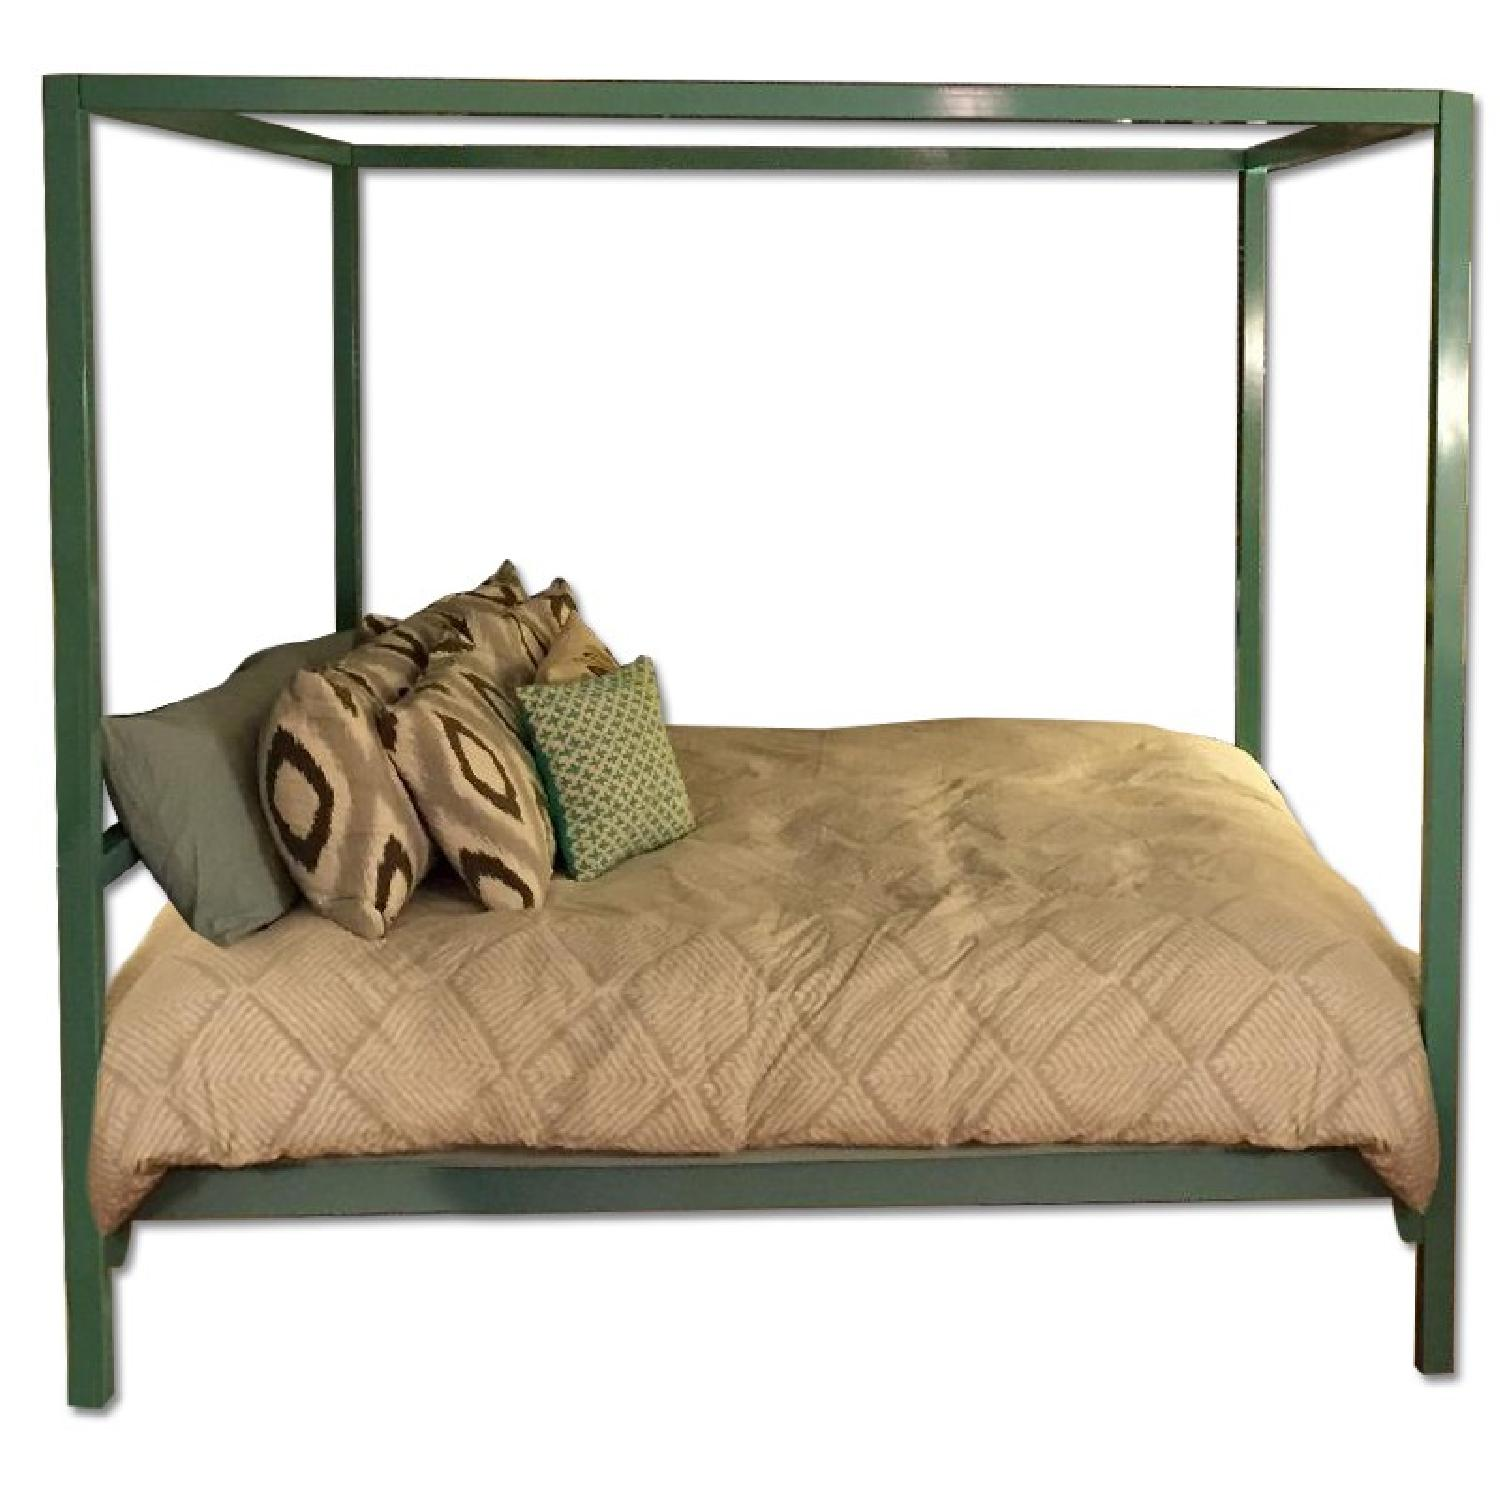 Room & Board King Size Canopy Architecture Bed - image-0